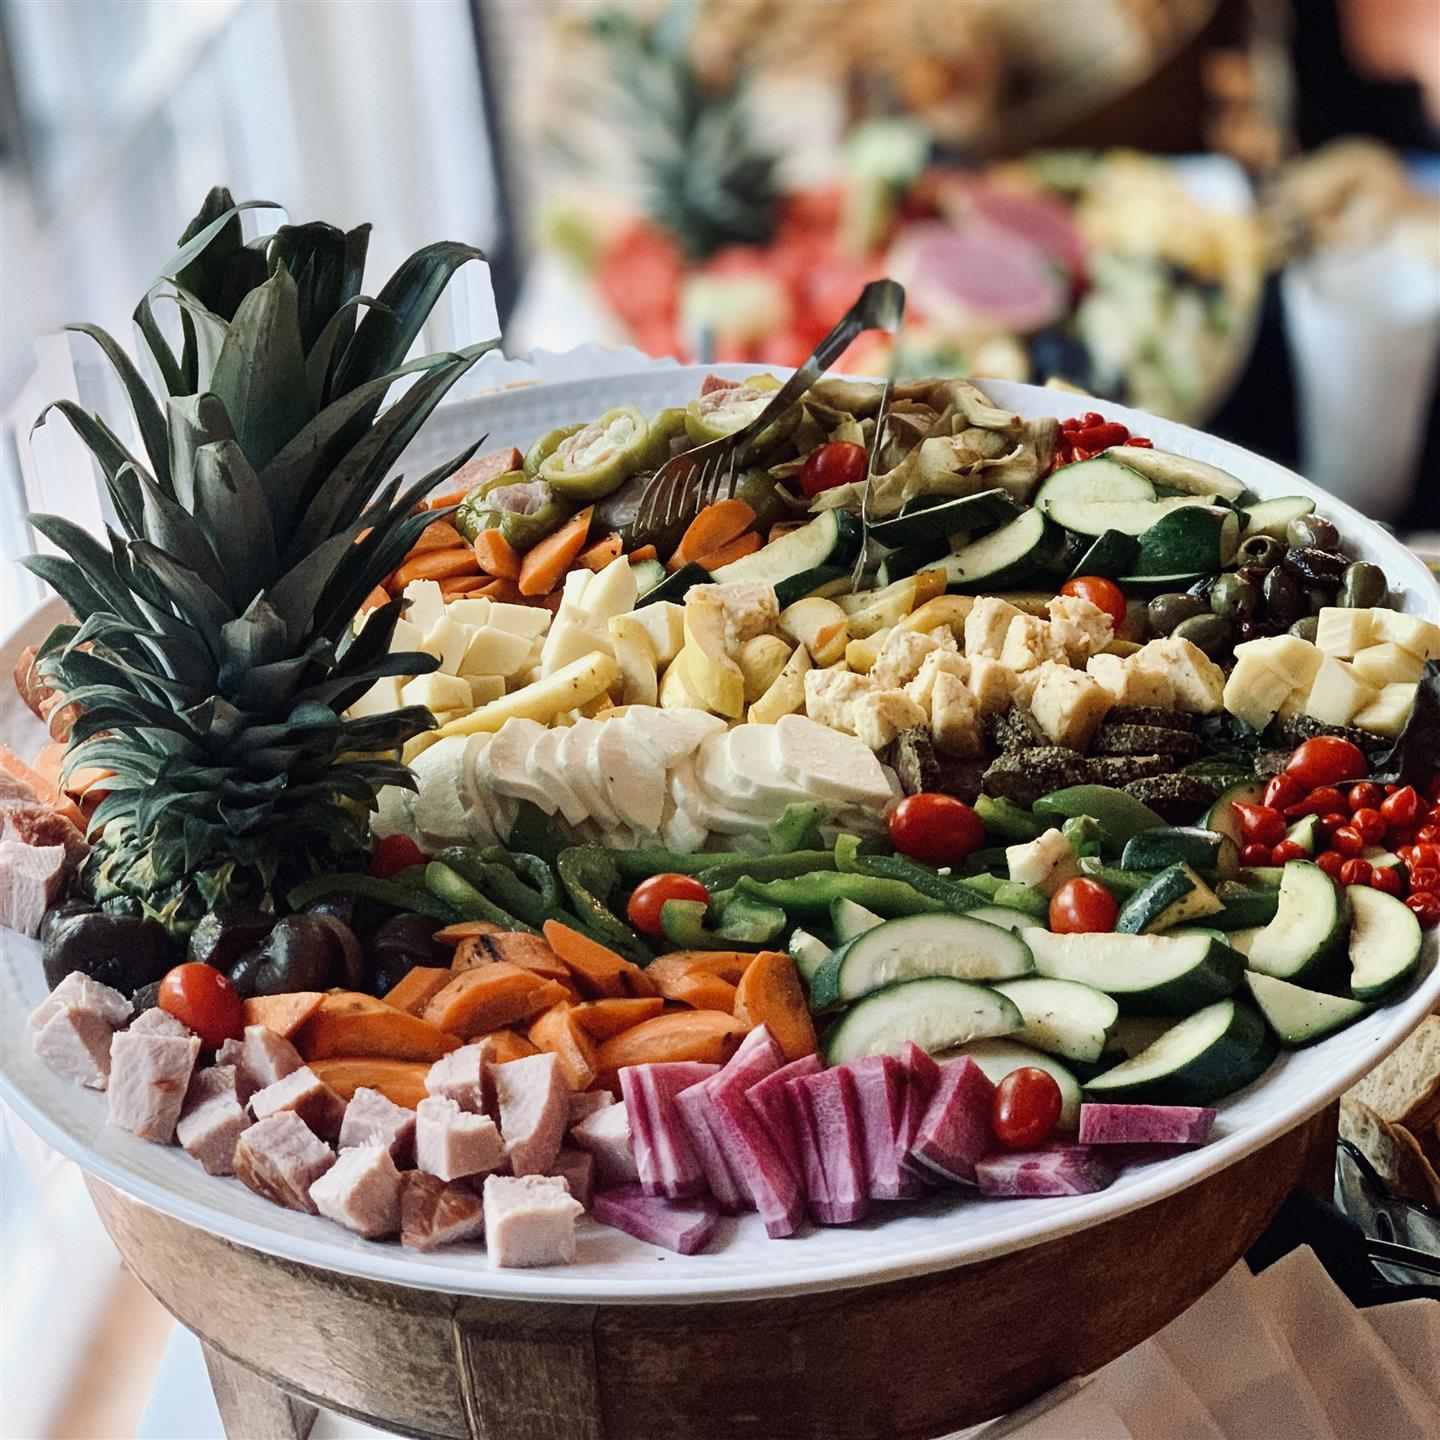 platter with grilled vegetables, cheeses, and meat with a pineapple head on the side